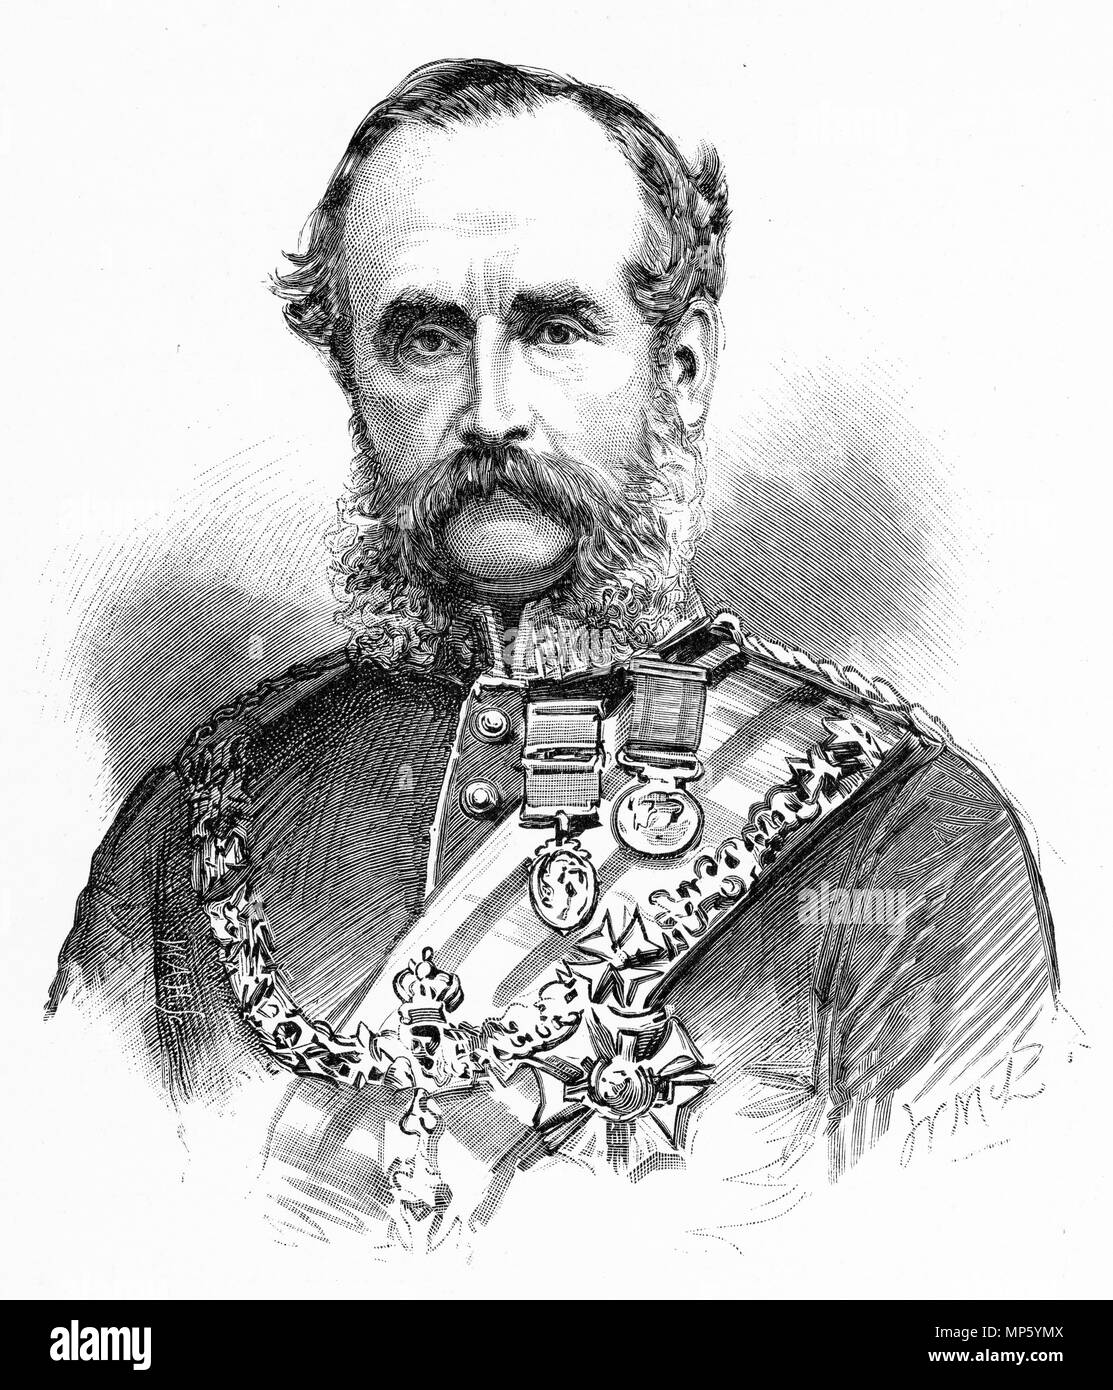 Engraving of Sir William Jervois, governor of New Zealand. From the Picturesque Atlas of Australasia Vol 3, 1886 - Stock Image